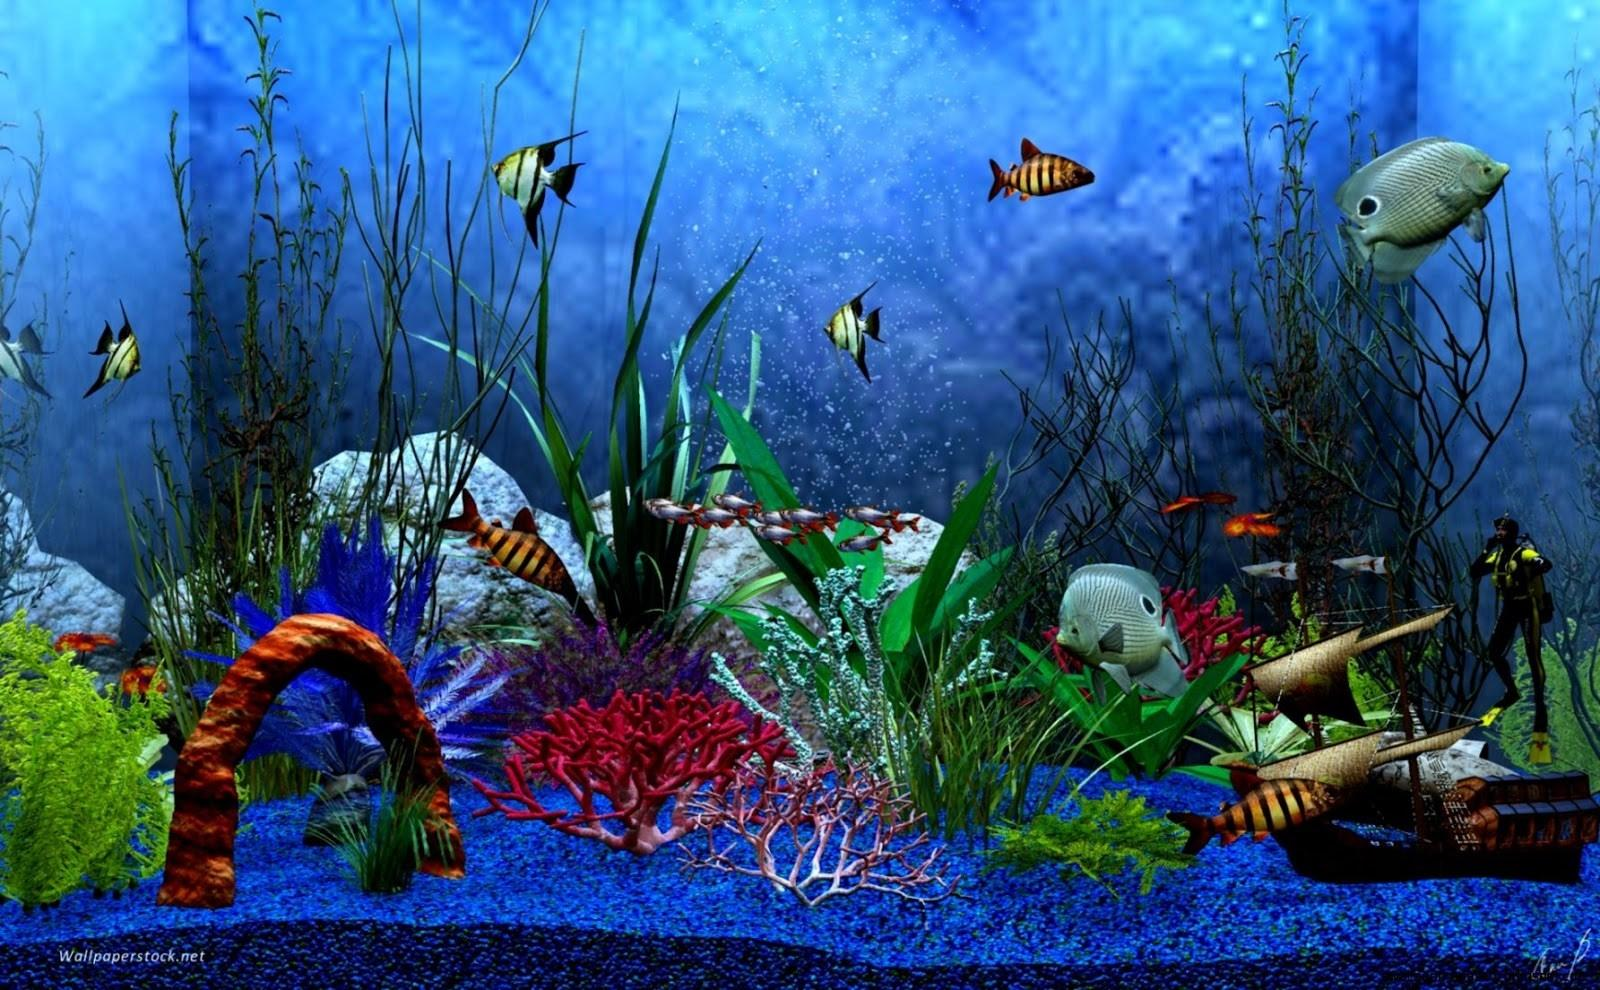 Lovely Free Download Animated Aquarium Desktop Wallpapers for Windows